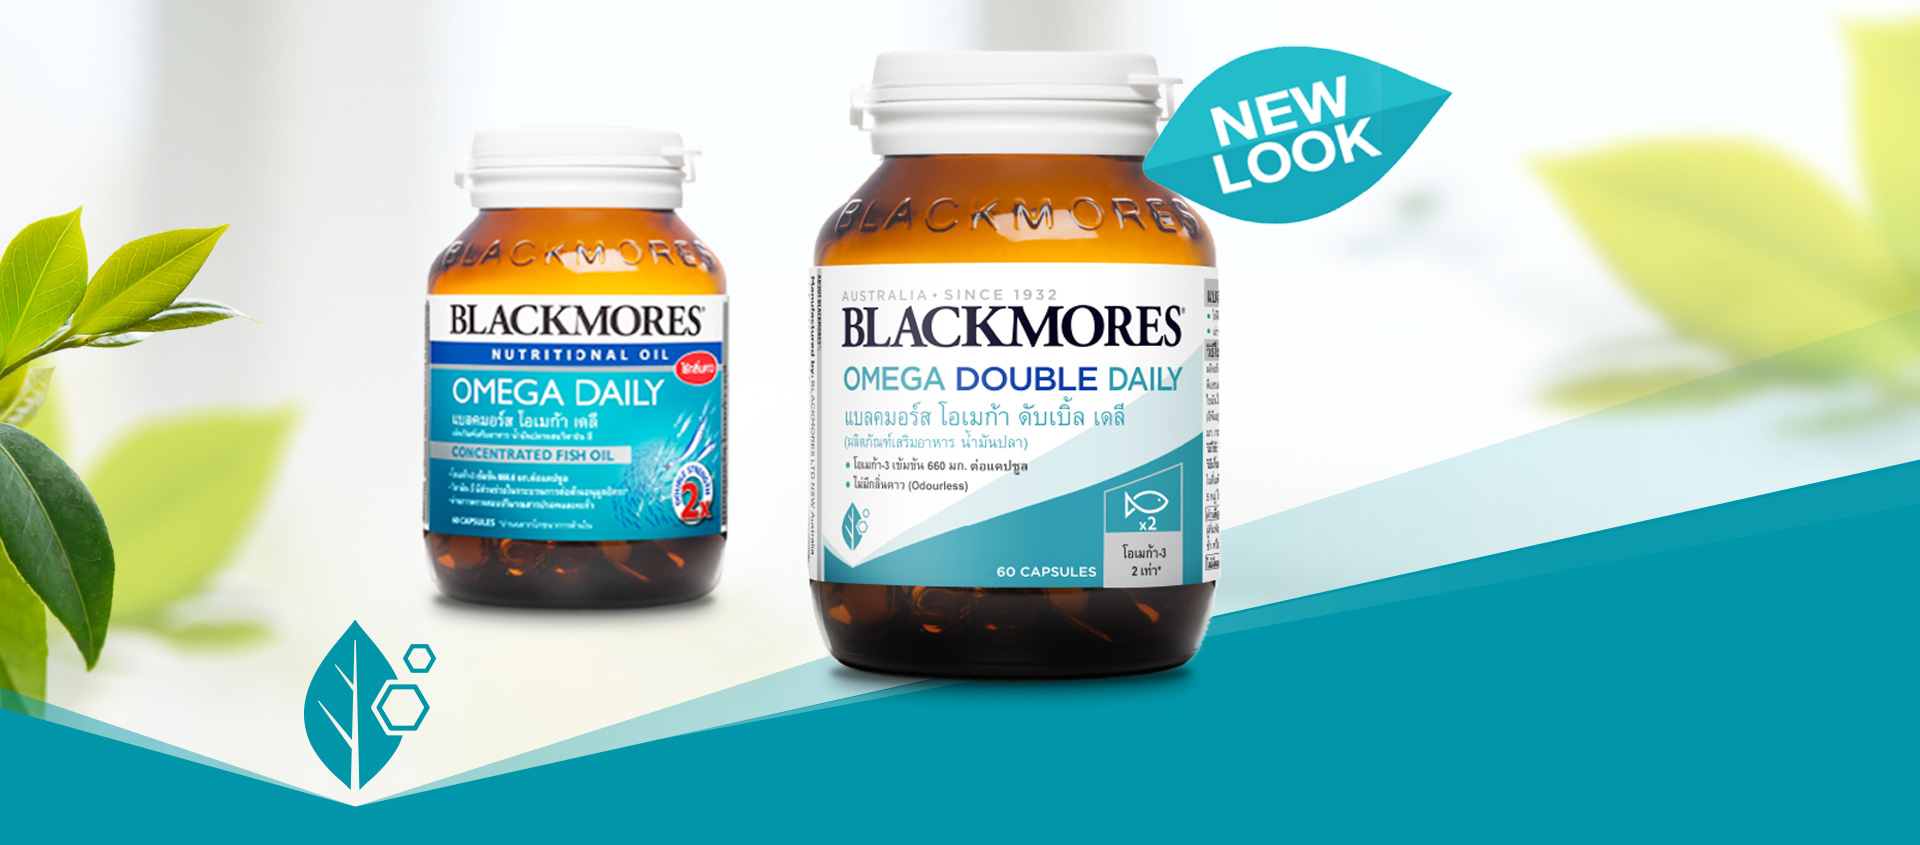 Blackmores Omega Double Daily